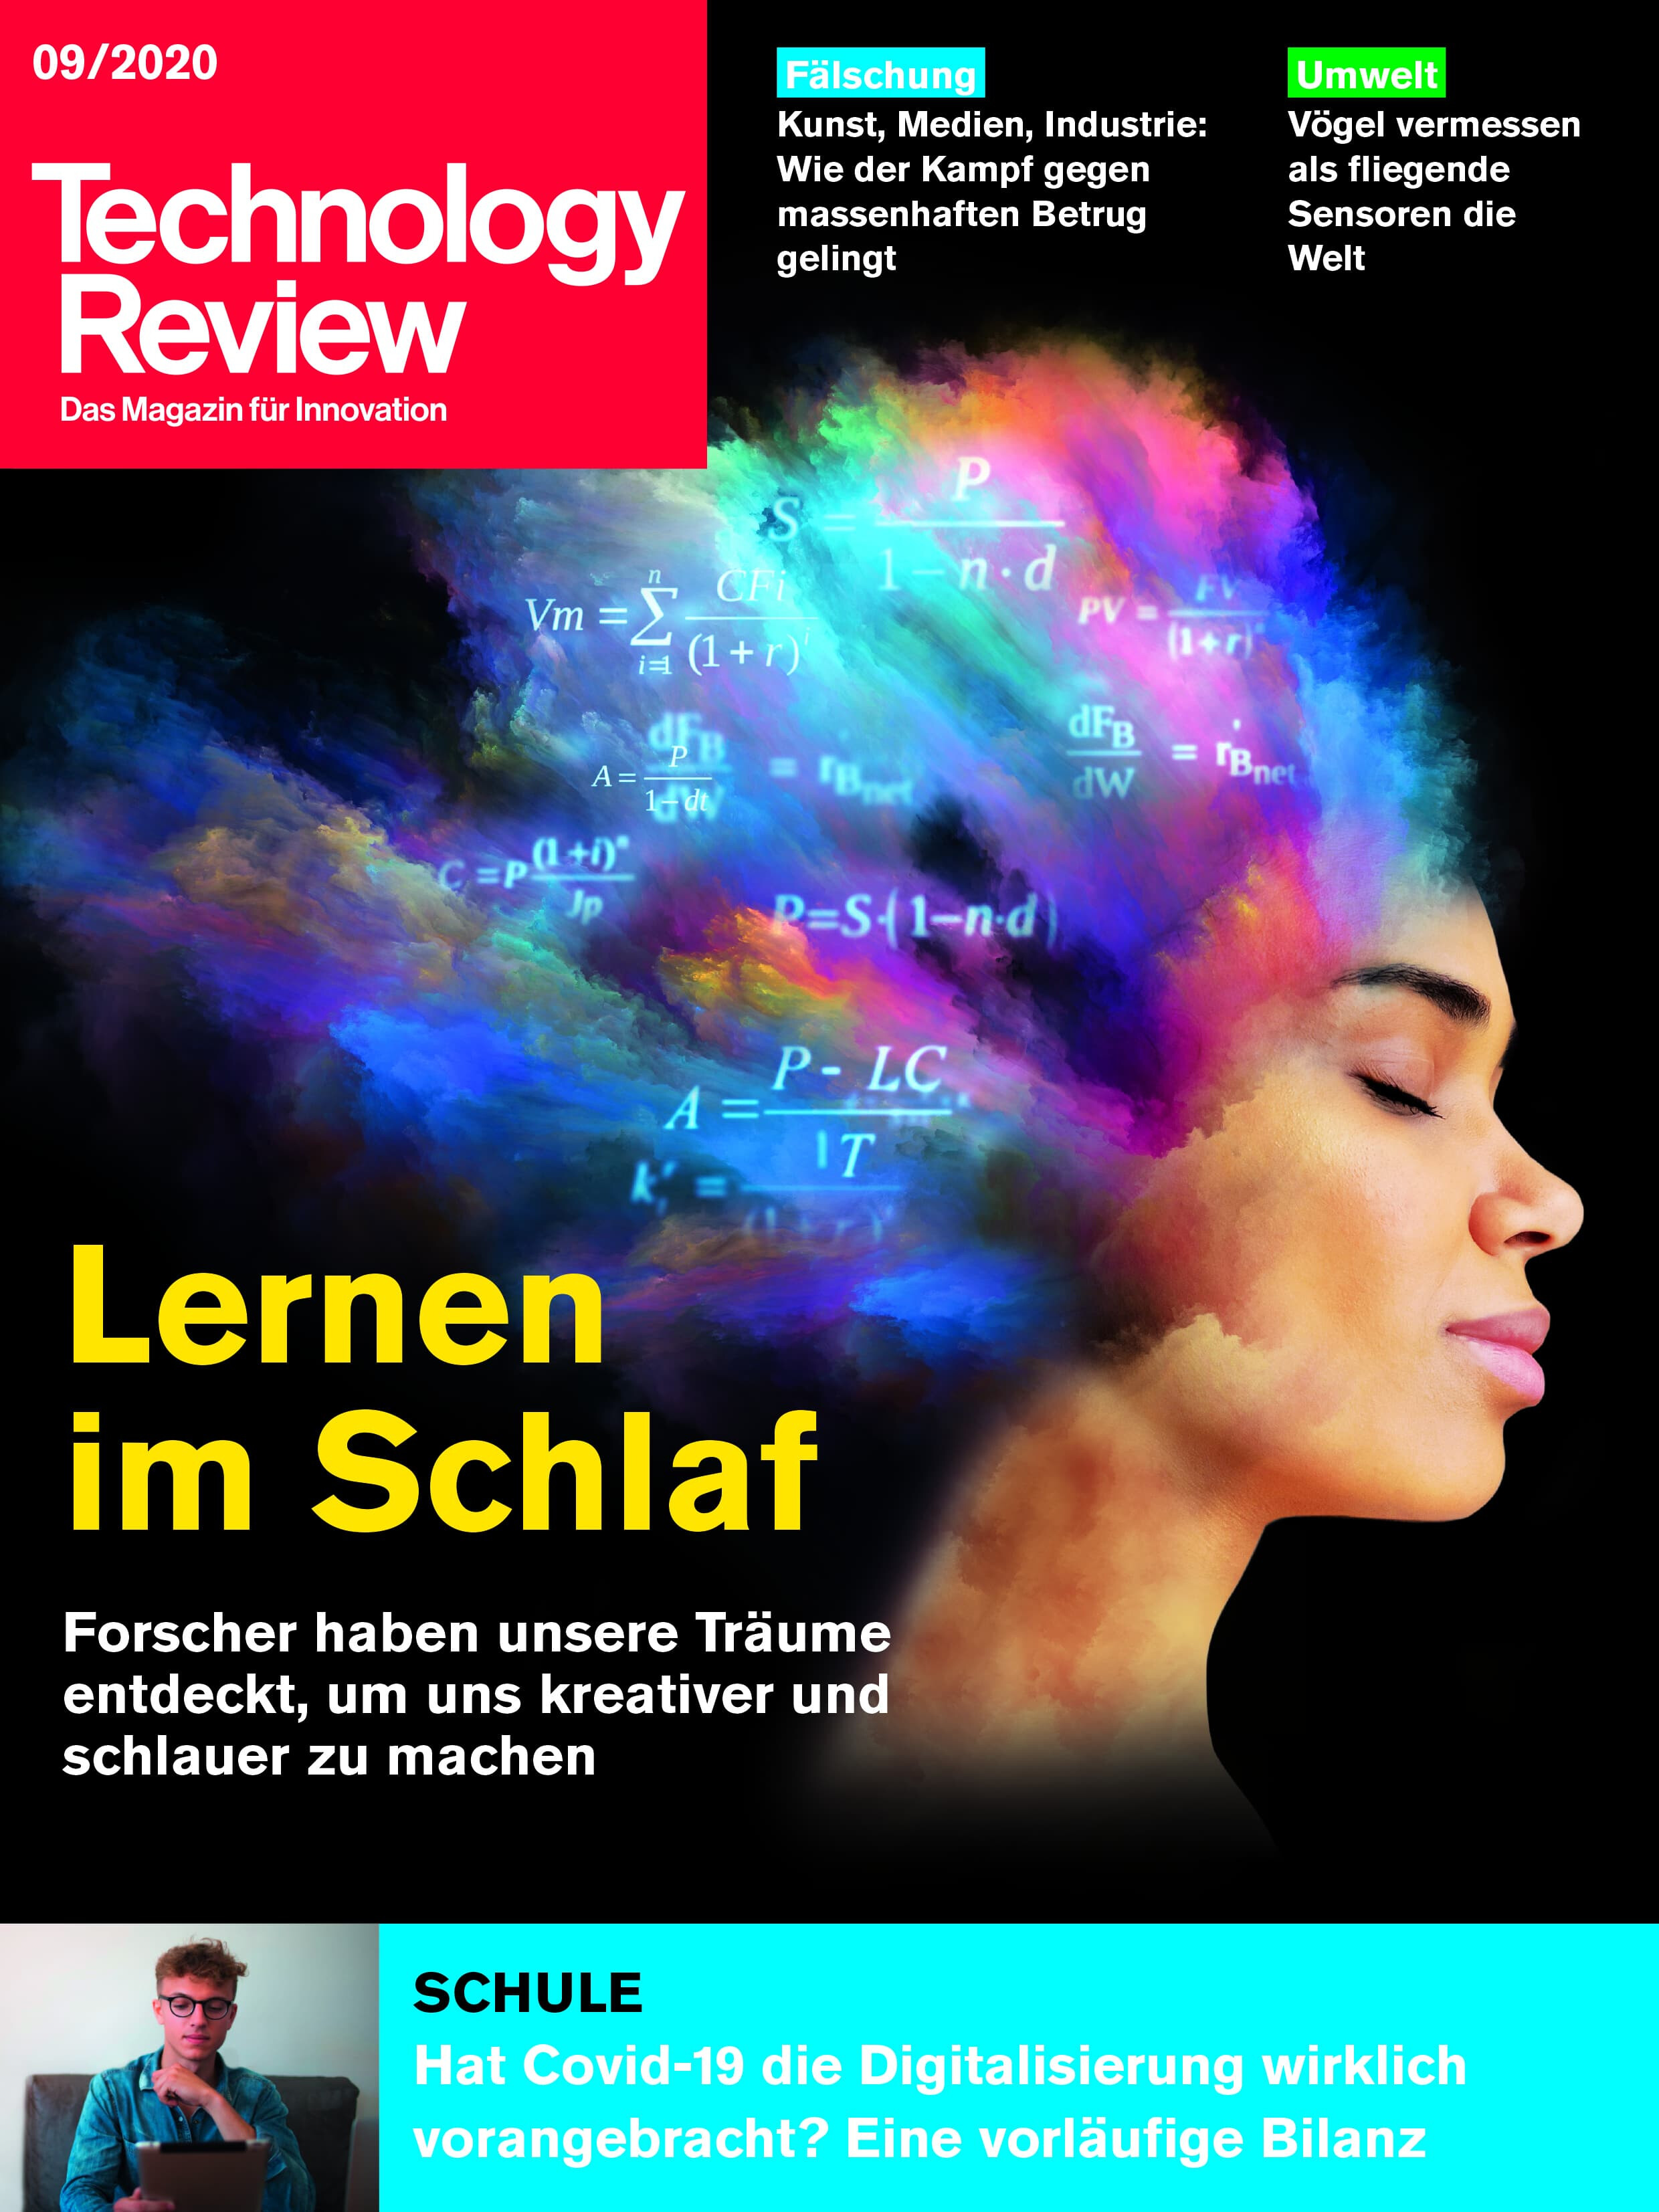 Technology Review 09/2020